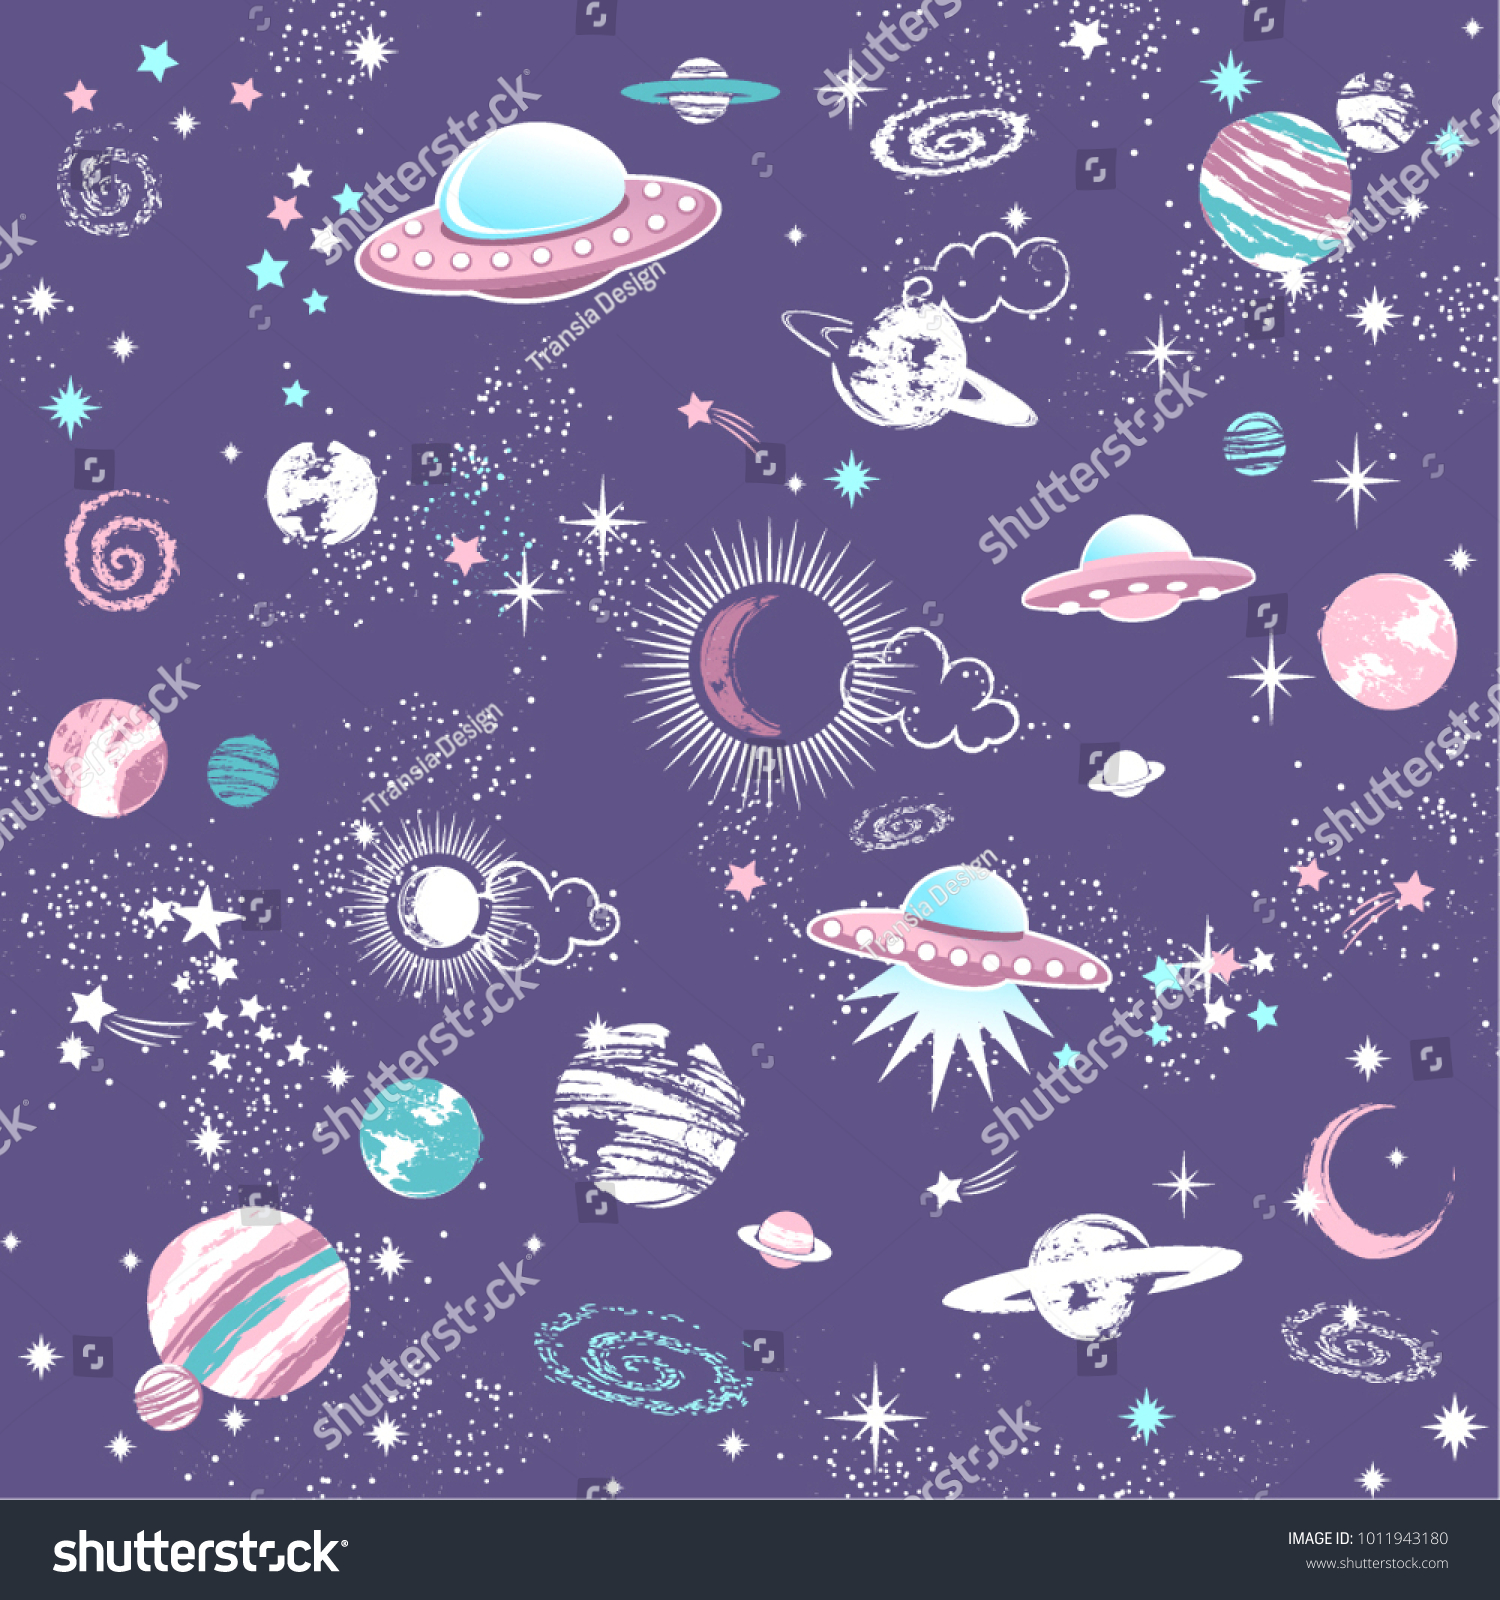 Space Galaxy Constellation Seamless Pattern Print Could Be Used For Textile Zodiac Star Yoga Mat